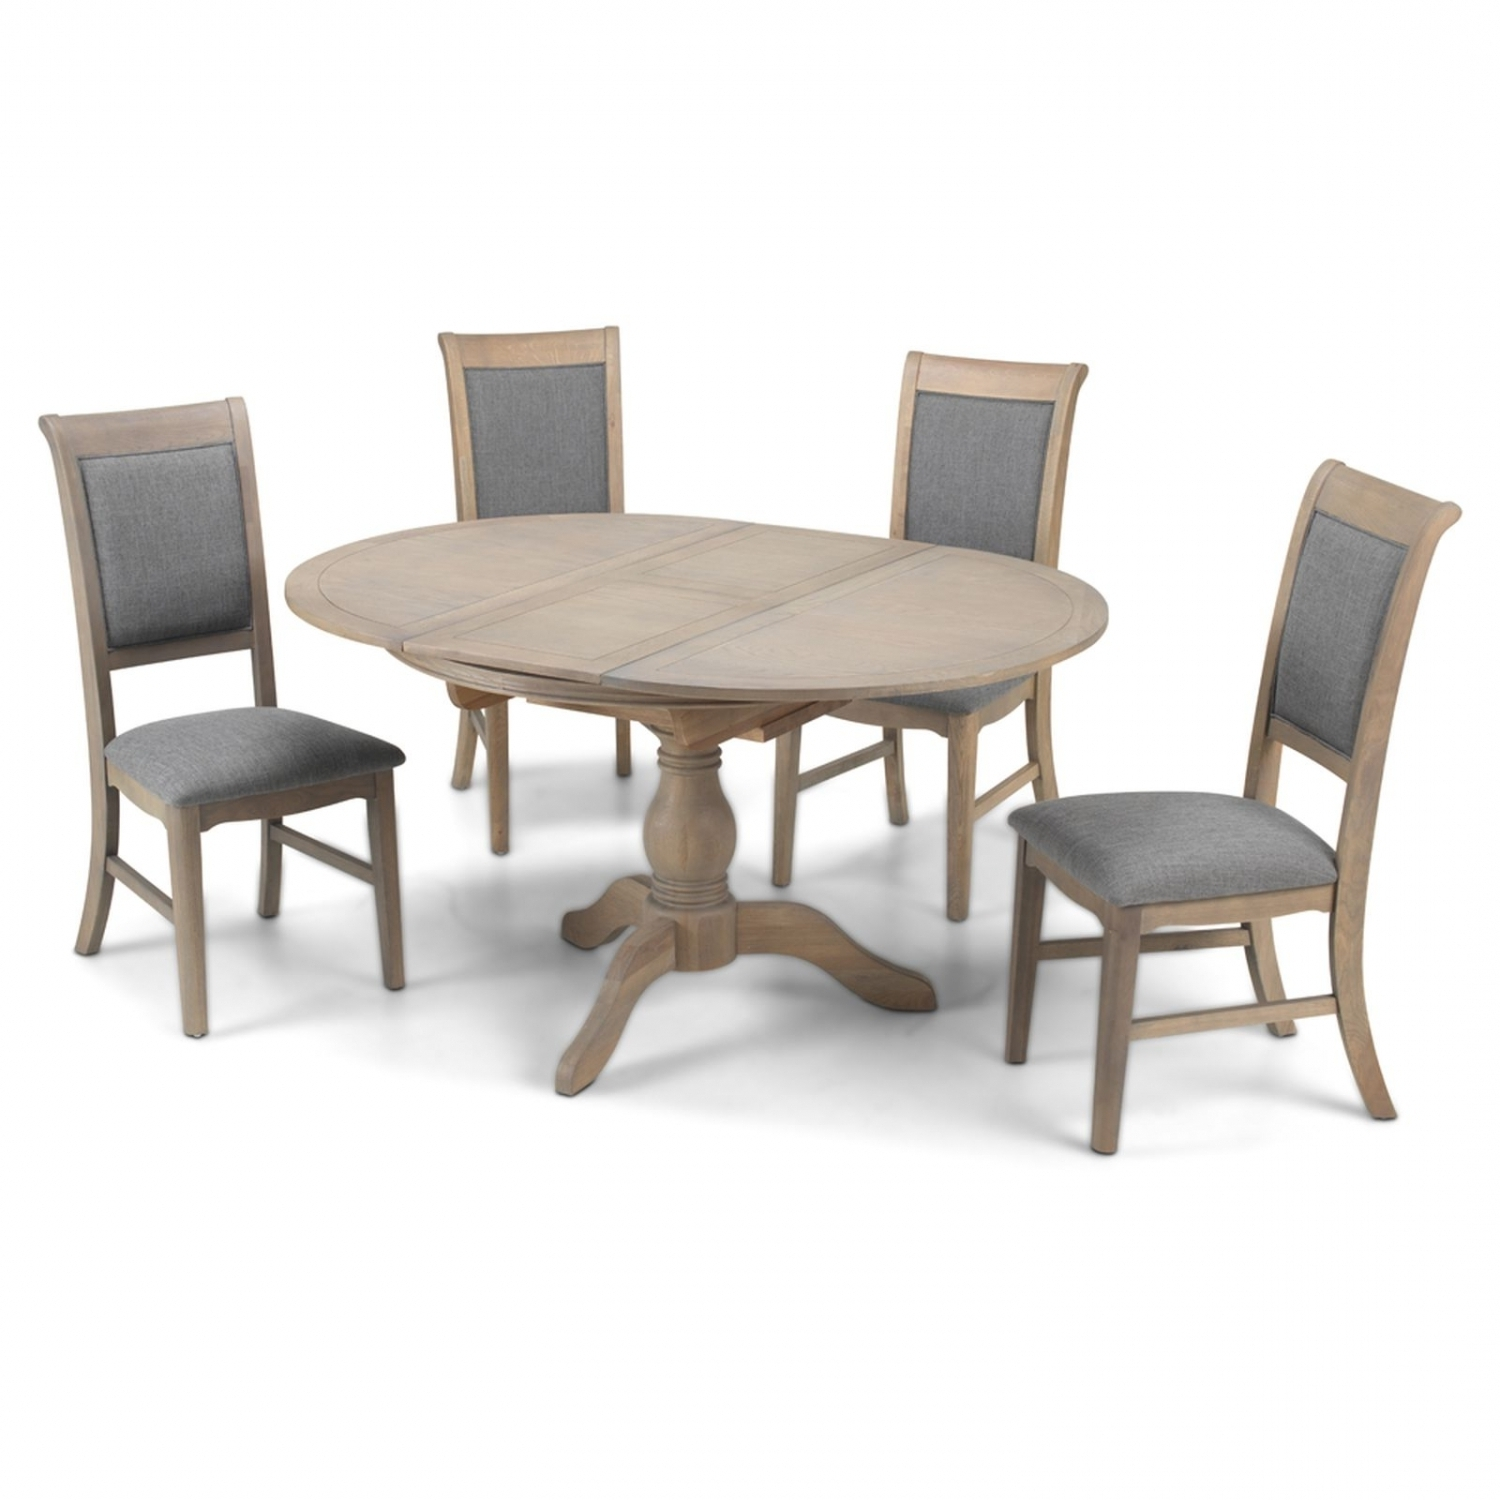 Trendy Welford Oak Furniture Grey Round Extending Dining Table With Four Throughout Dining Tables Grey Chairs (View 9 of 25)